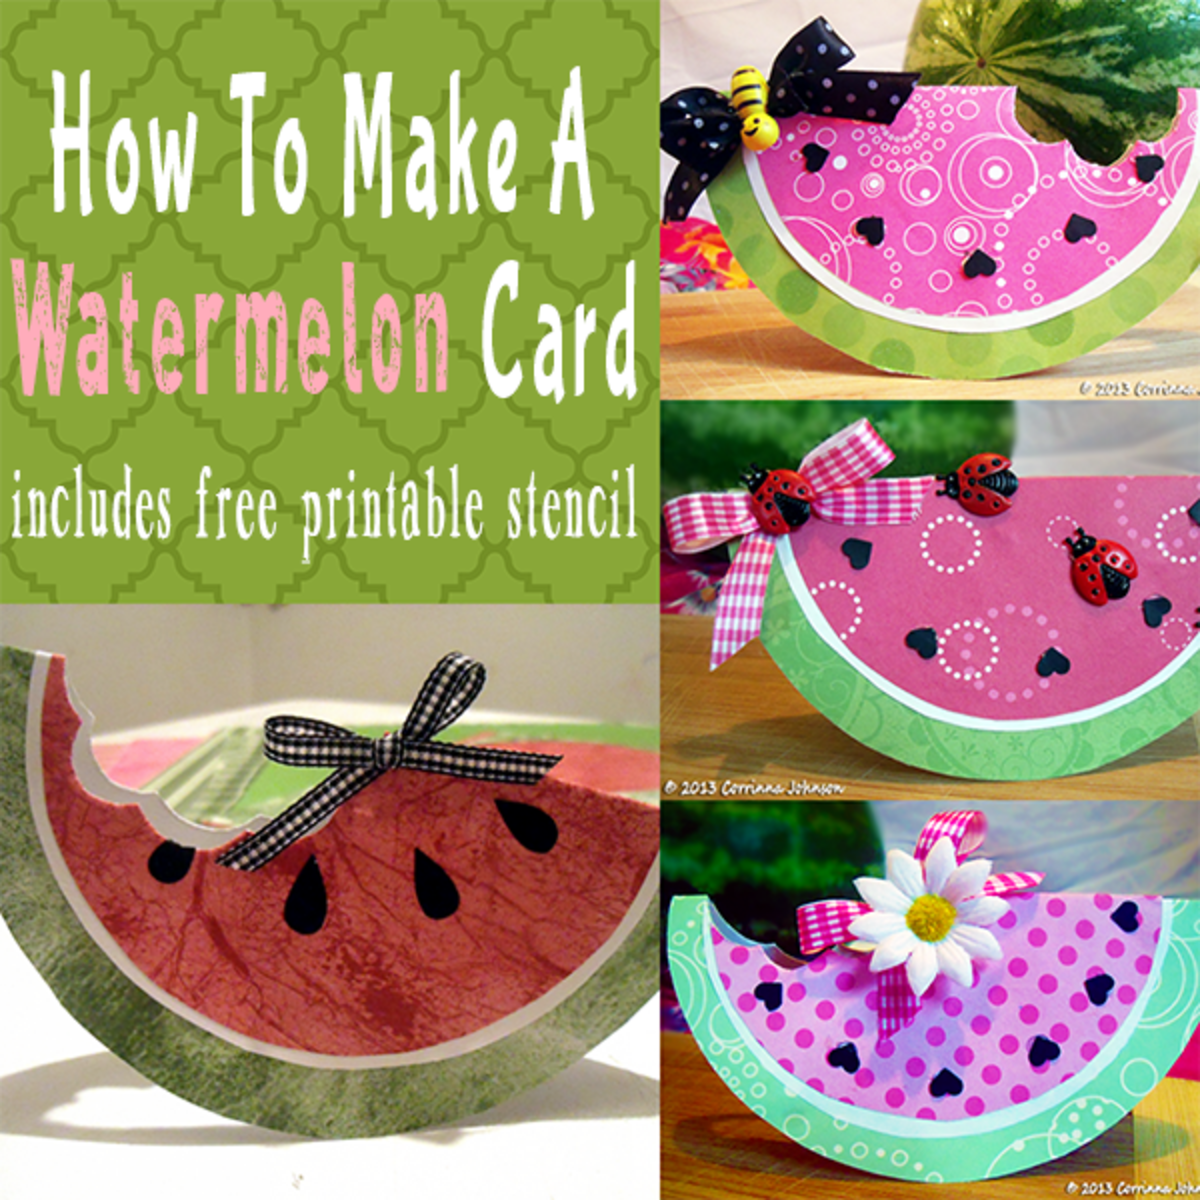 How To Make A Watermelon Card Or Invitation